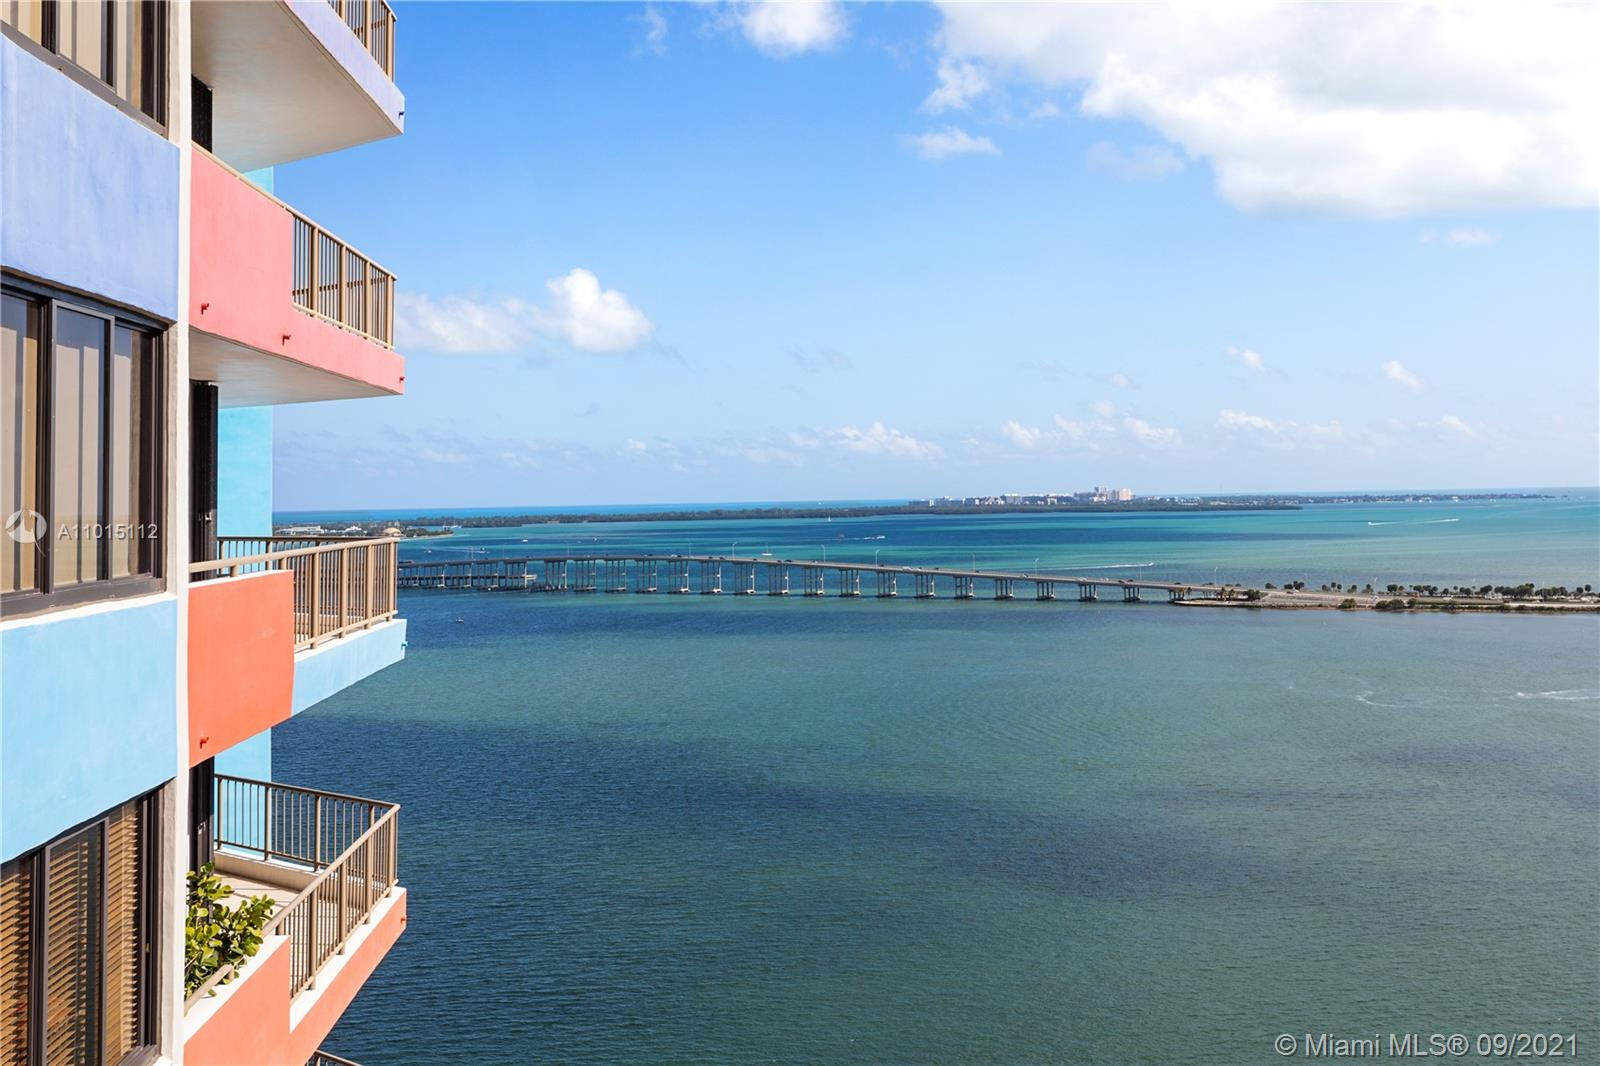 Newly Priced! Now priced to sell.  This apartment is HUGE, with 2,403 sq feet of living space it's truly a house in the sky.  This 2 bedroom + den + bonus room, 3 full baths are perfect for anyone wanting to live in the heart of Miami.  It offers multiple views from its two balconies, including water views of Biscayne Bay, Miami's Brickell Skyline, and the port of Miami from the master bedroom balcony.  Kitchen and 2nd bedroom and bathroom recently remodeled in 2016.  Villa Regina has resort-style amenities including a gorgeous pool, jacuzzi, BBQ area. Spa, sauna, movie room, billiard room, private party room, and highly south after boat slips in its private marina. All offers must include proof of funds